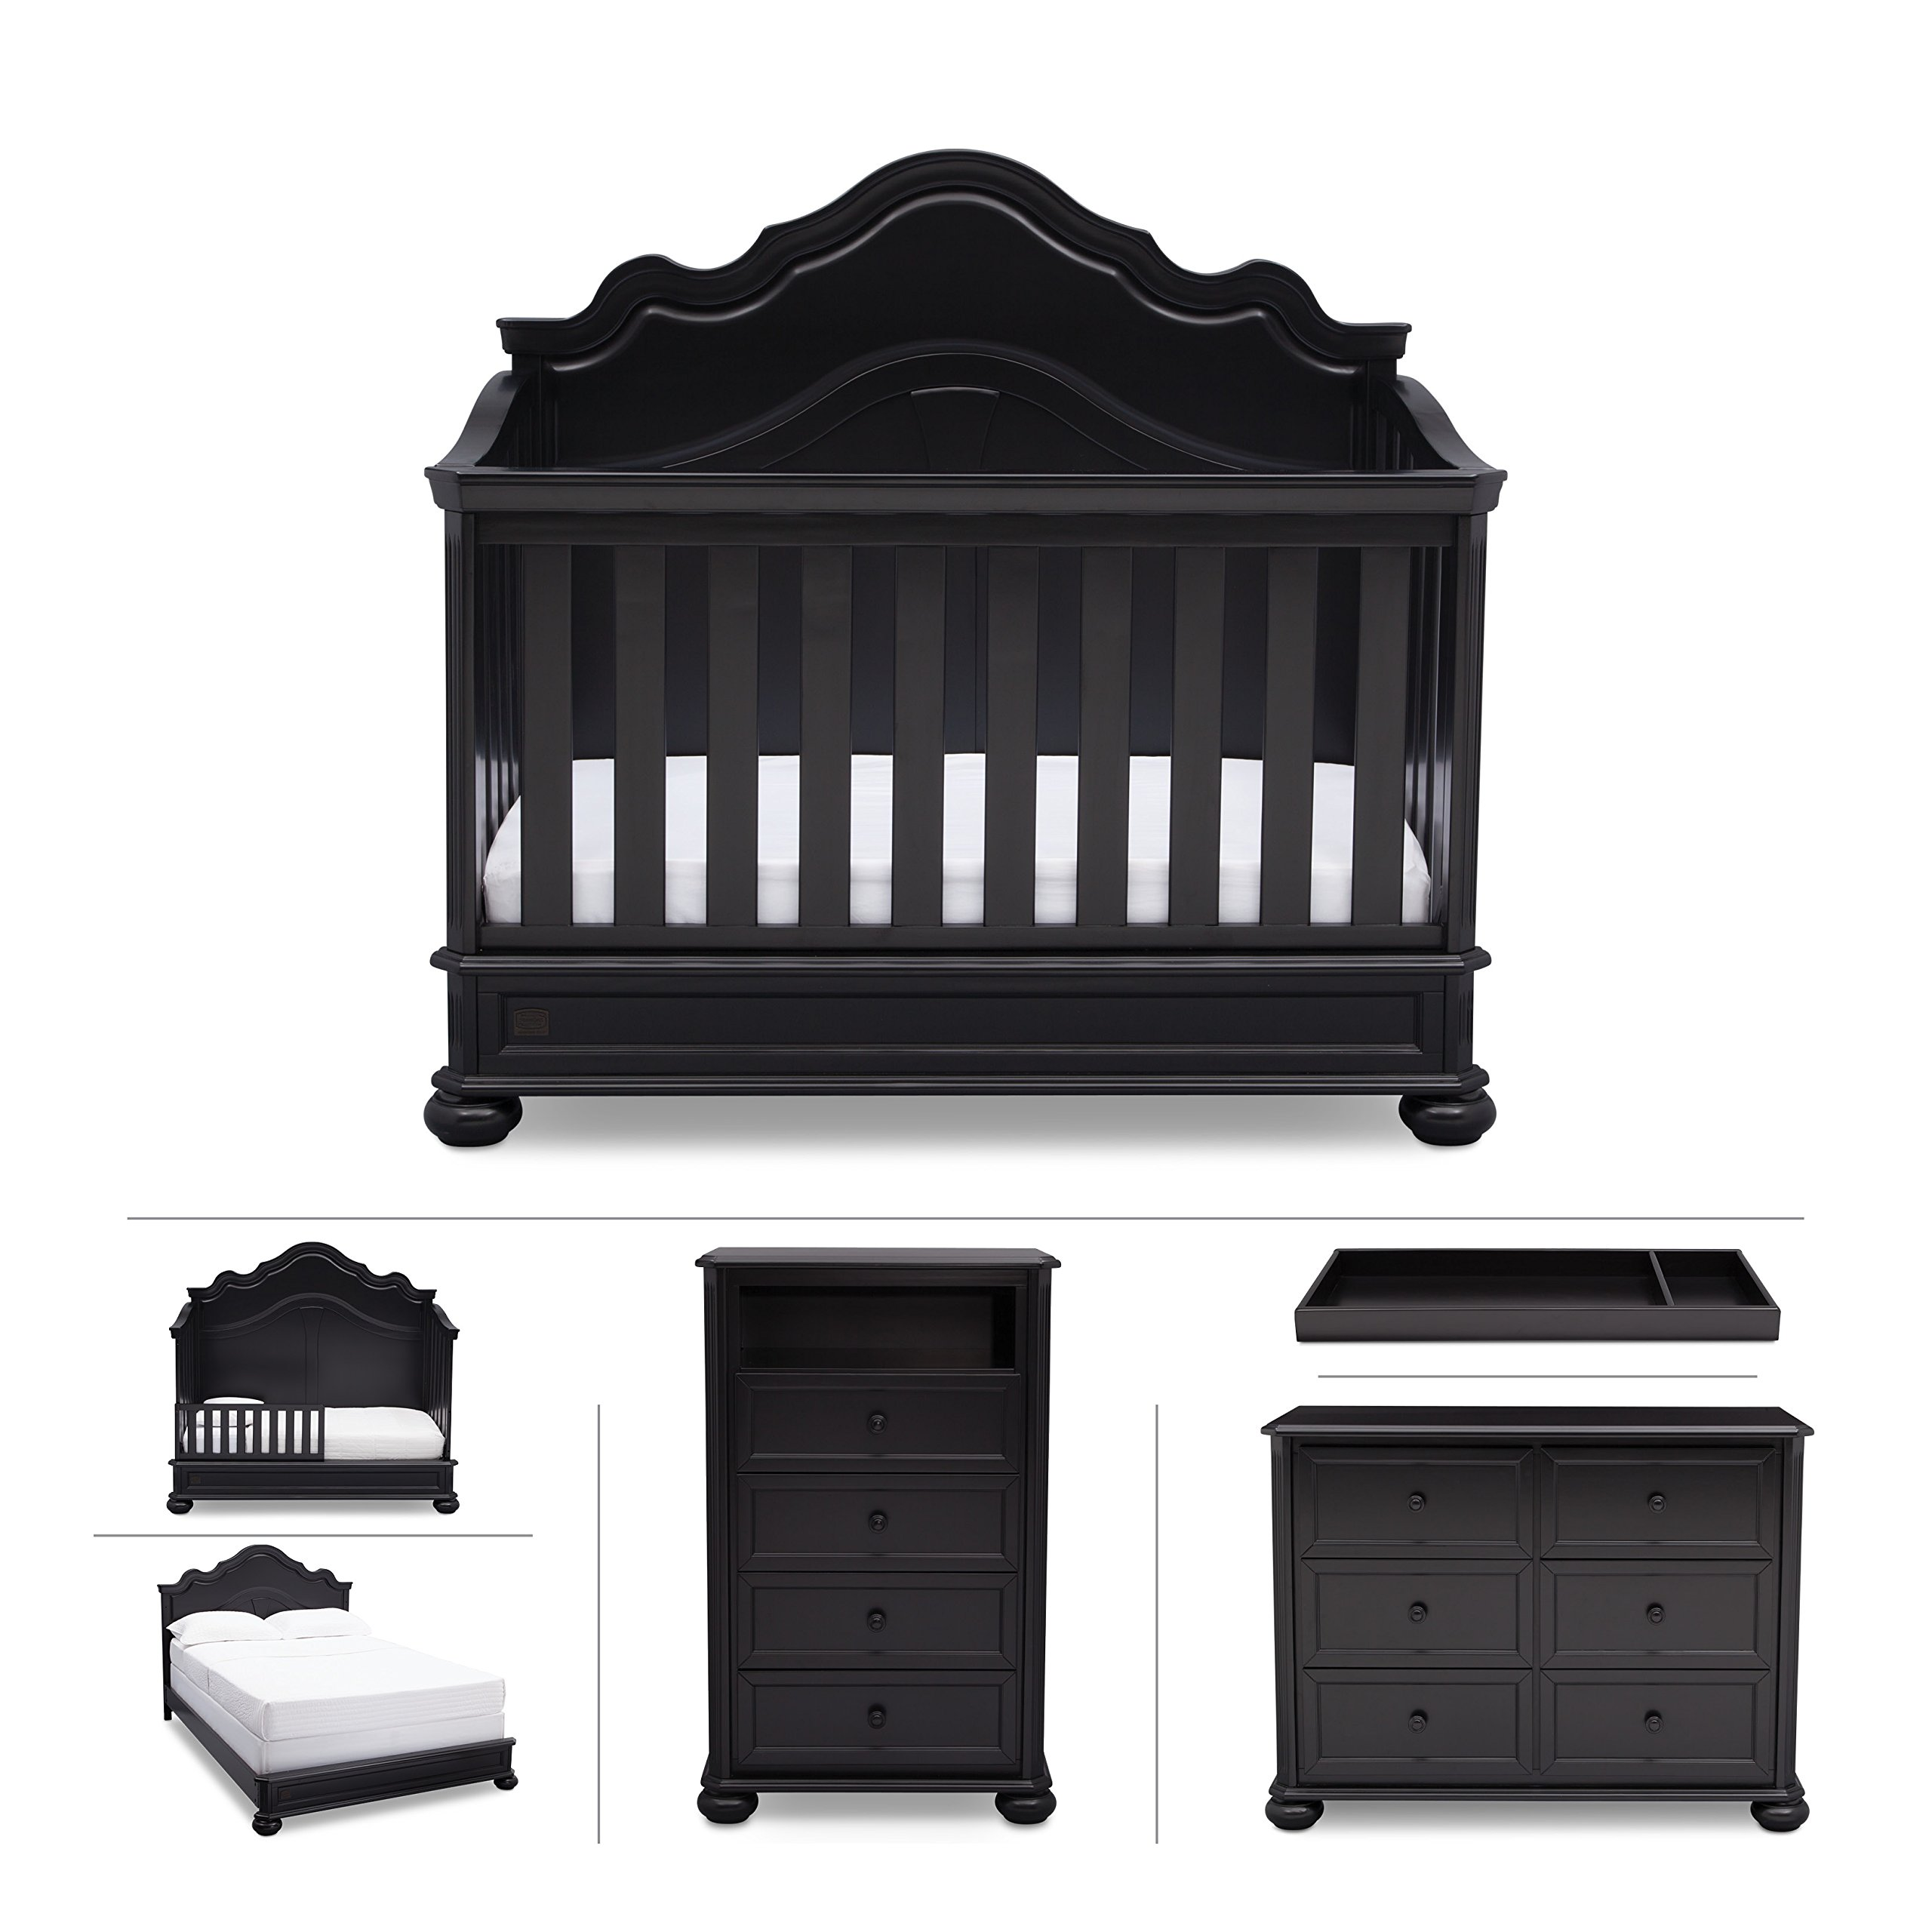 Nursery Furniture Set with Convertible Crib, Dresser, Chest, Changing Top, Toddler and Full Size Conversions – 6 piece Simmons Peyton Collection, Black